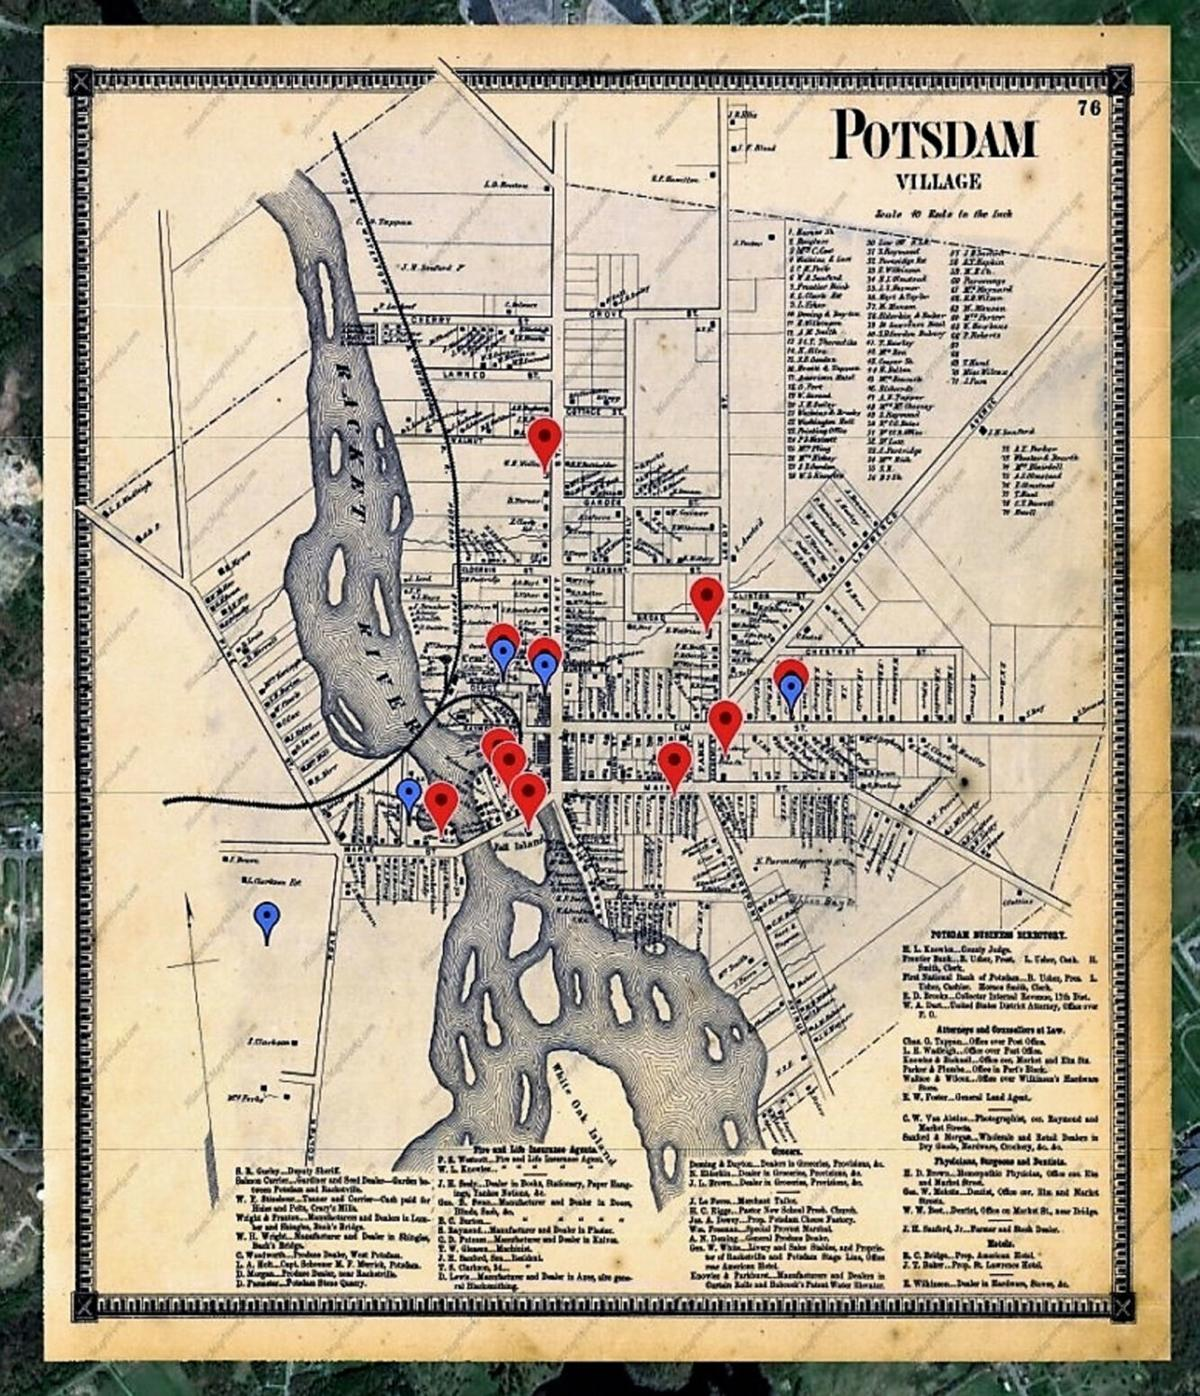 Linchpins to history Potsdam Public Museum creates interactive 1865 map